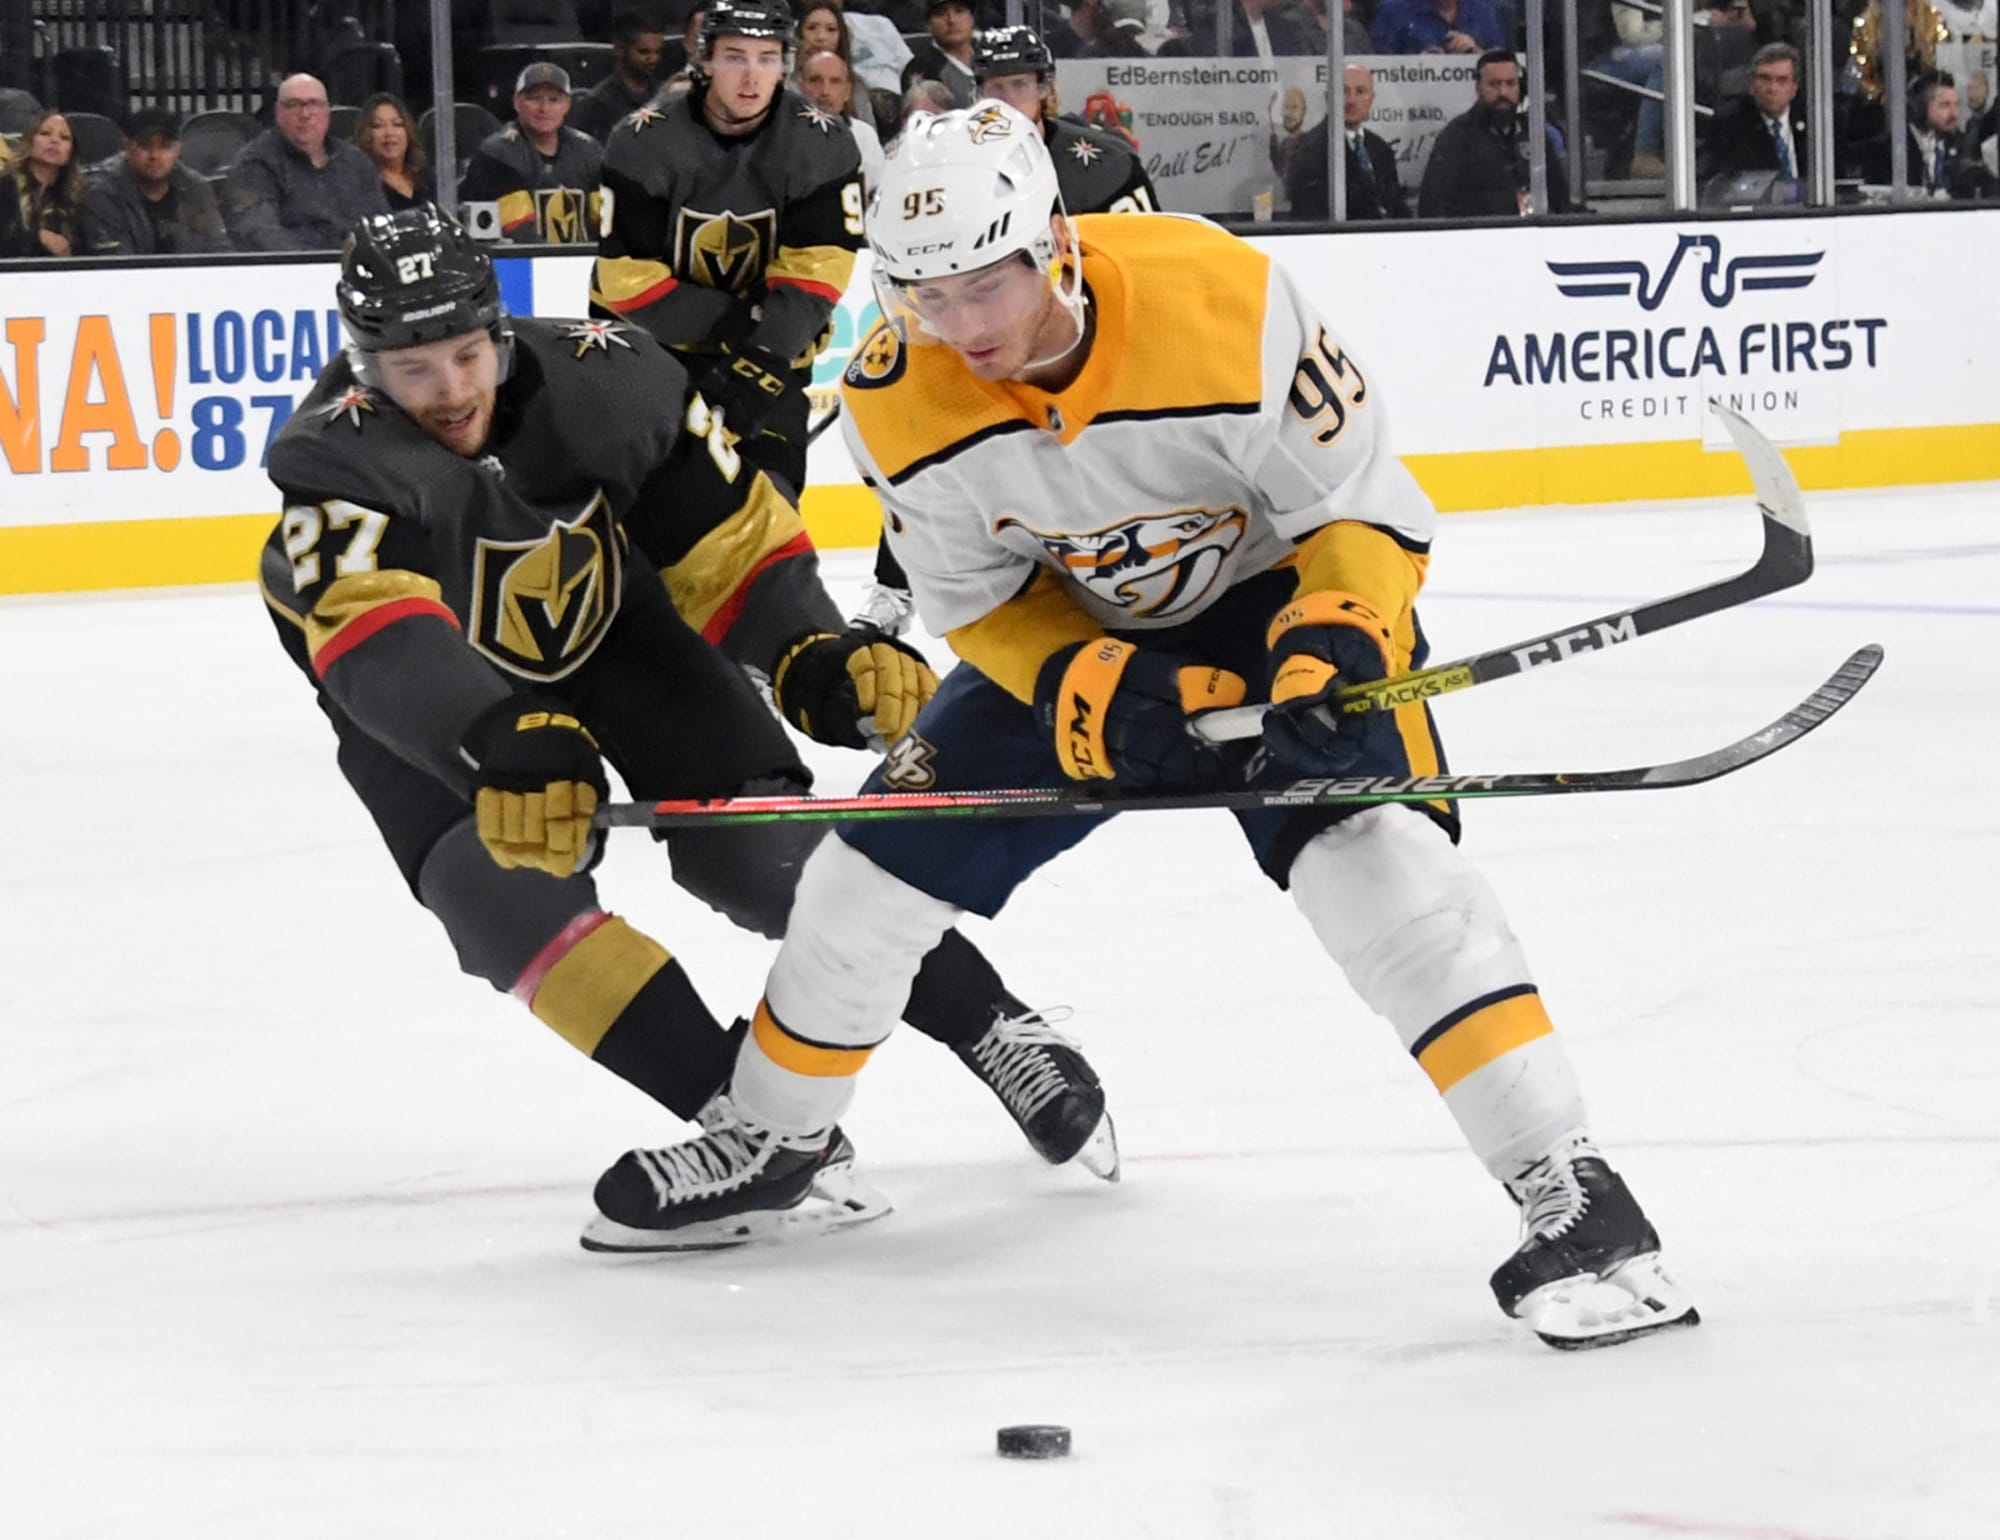 Vegas Golden Knights: Sizing up potential opponents in 24-team Playoff format